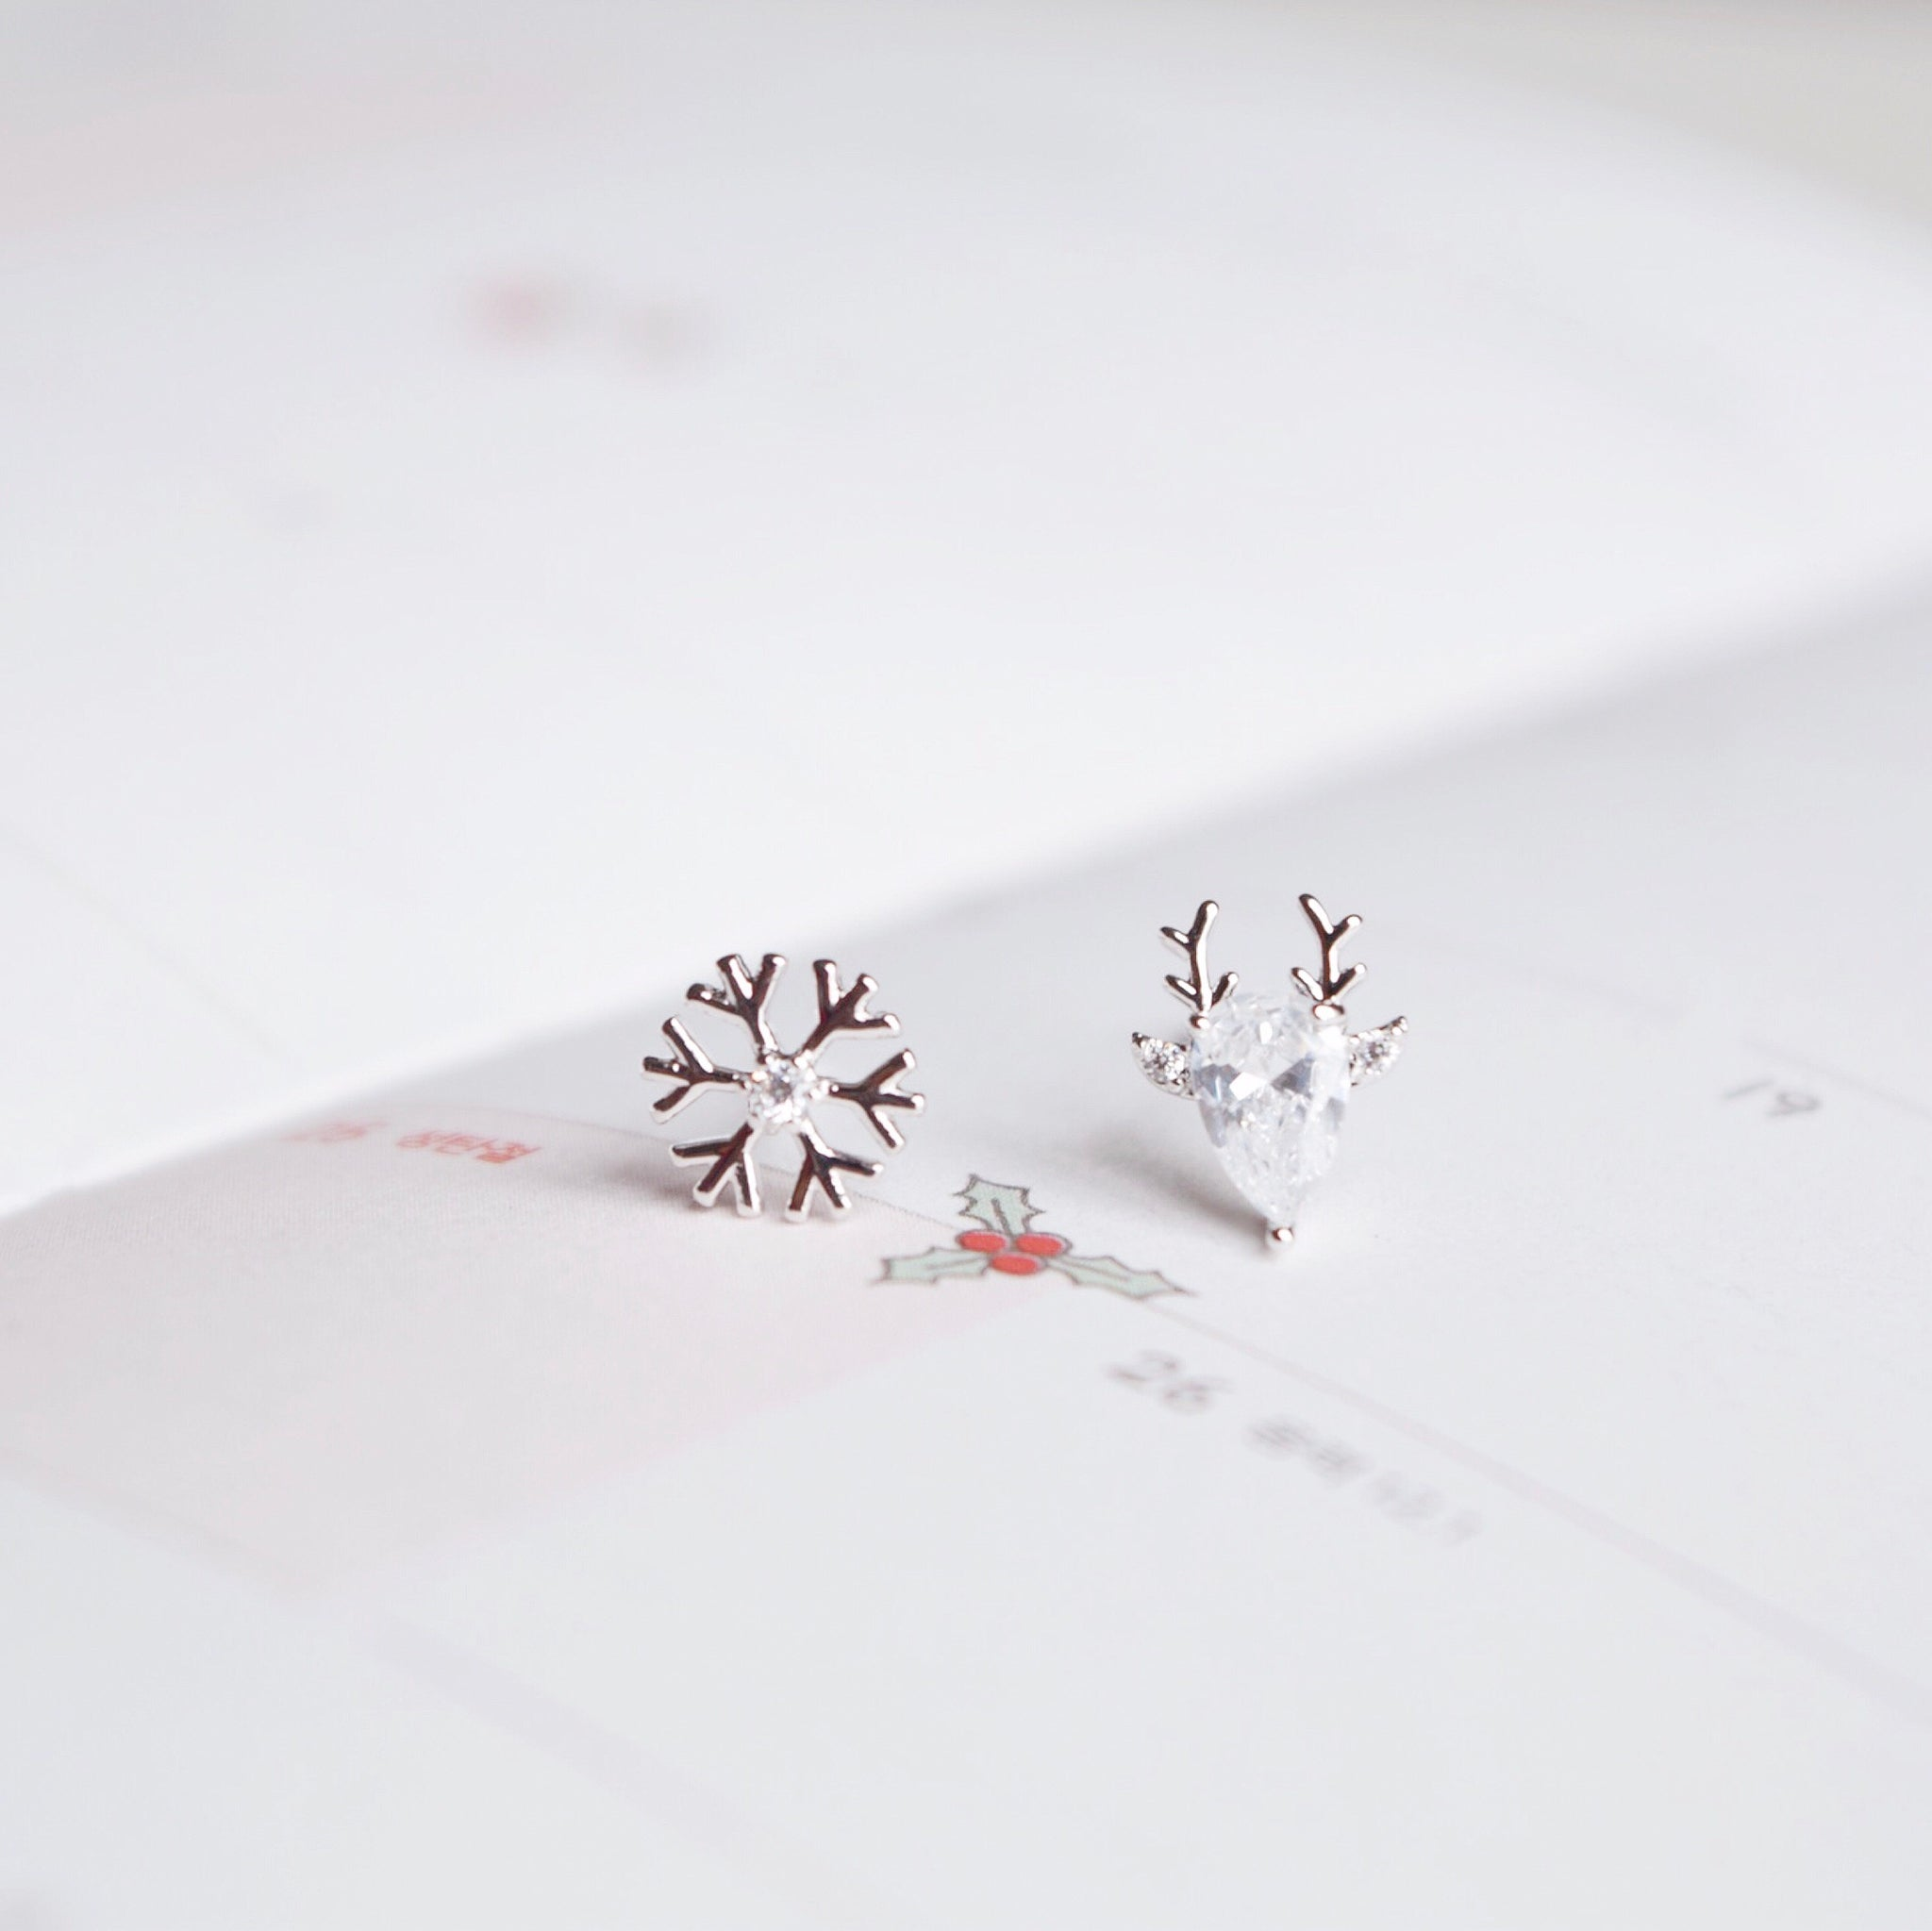 Reindeer & Snowflake Earrings